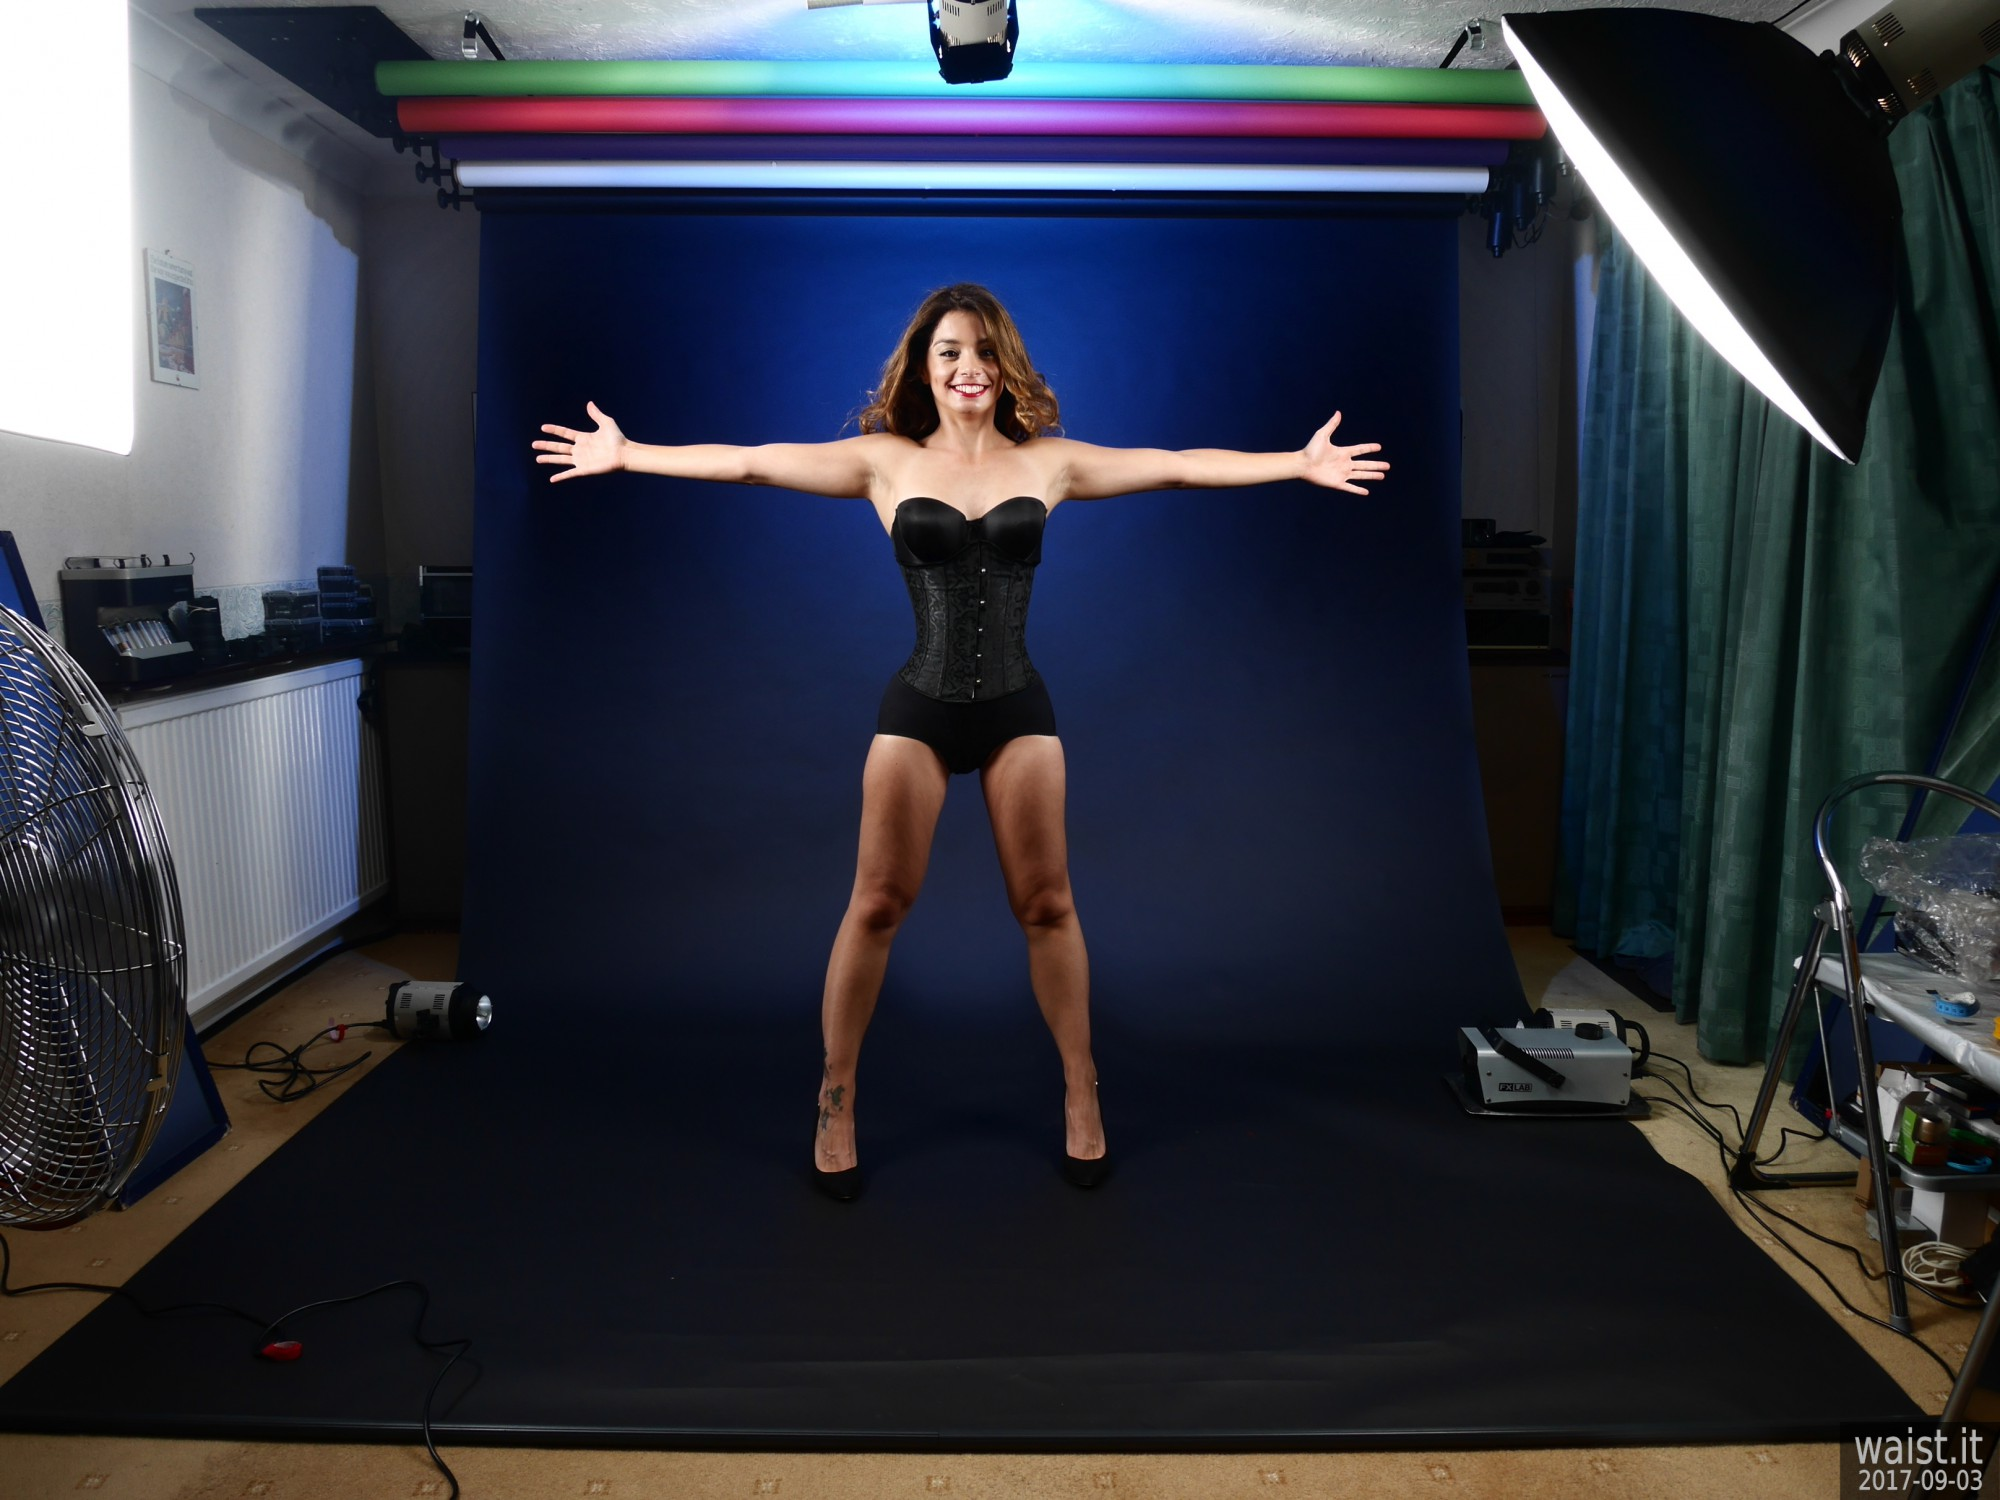 2017-09-03 Kris showing off the studio in tightky-laced black underbust corset and tight black panelled pantie-girdle worn as hotpants